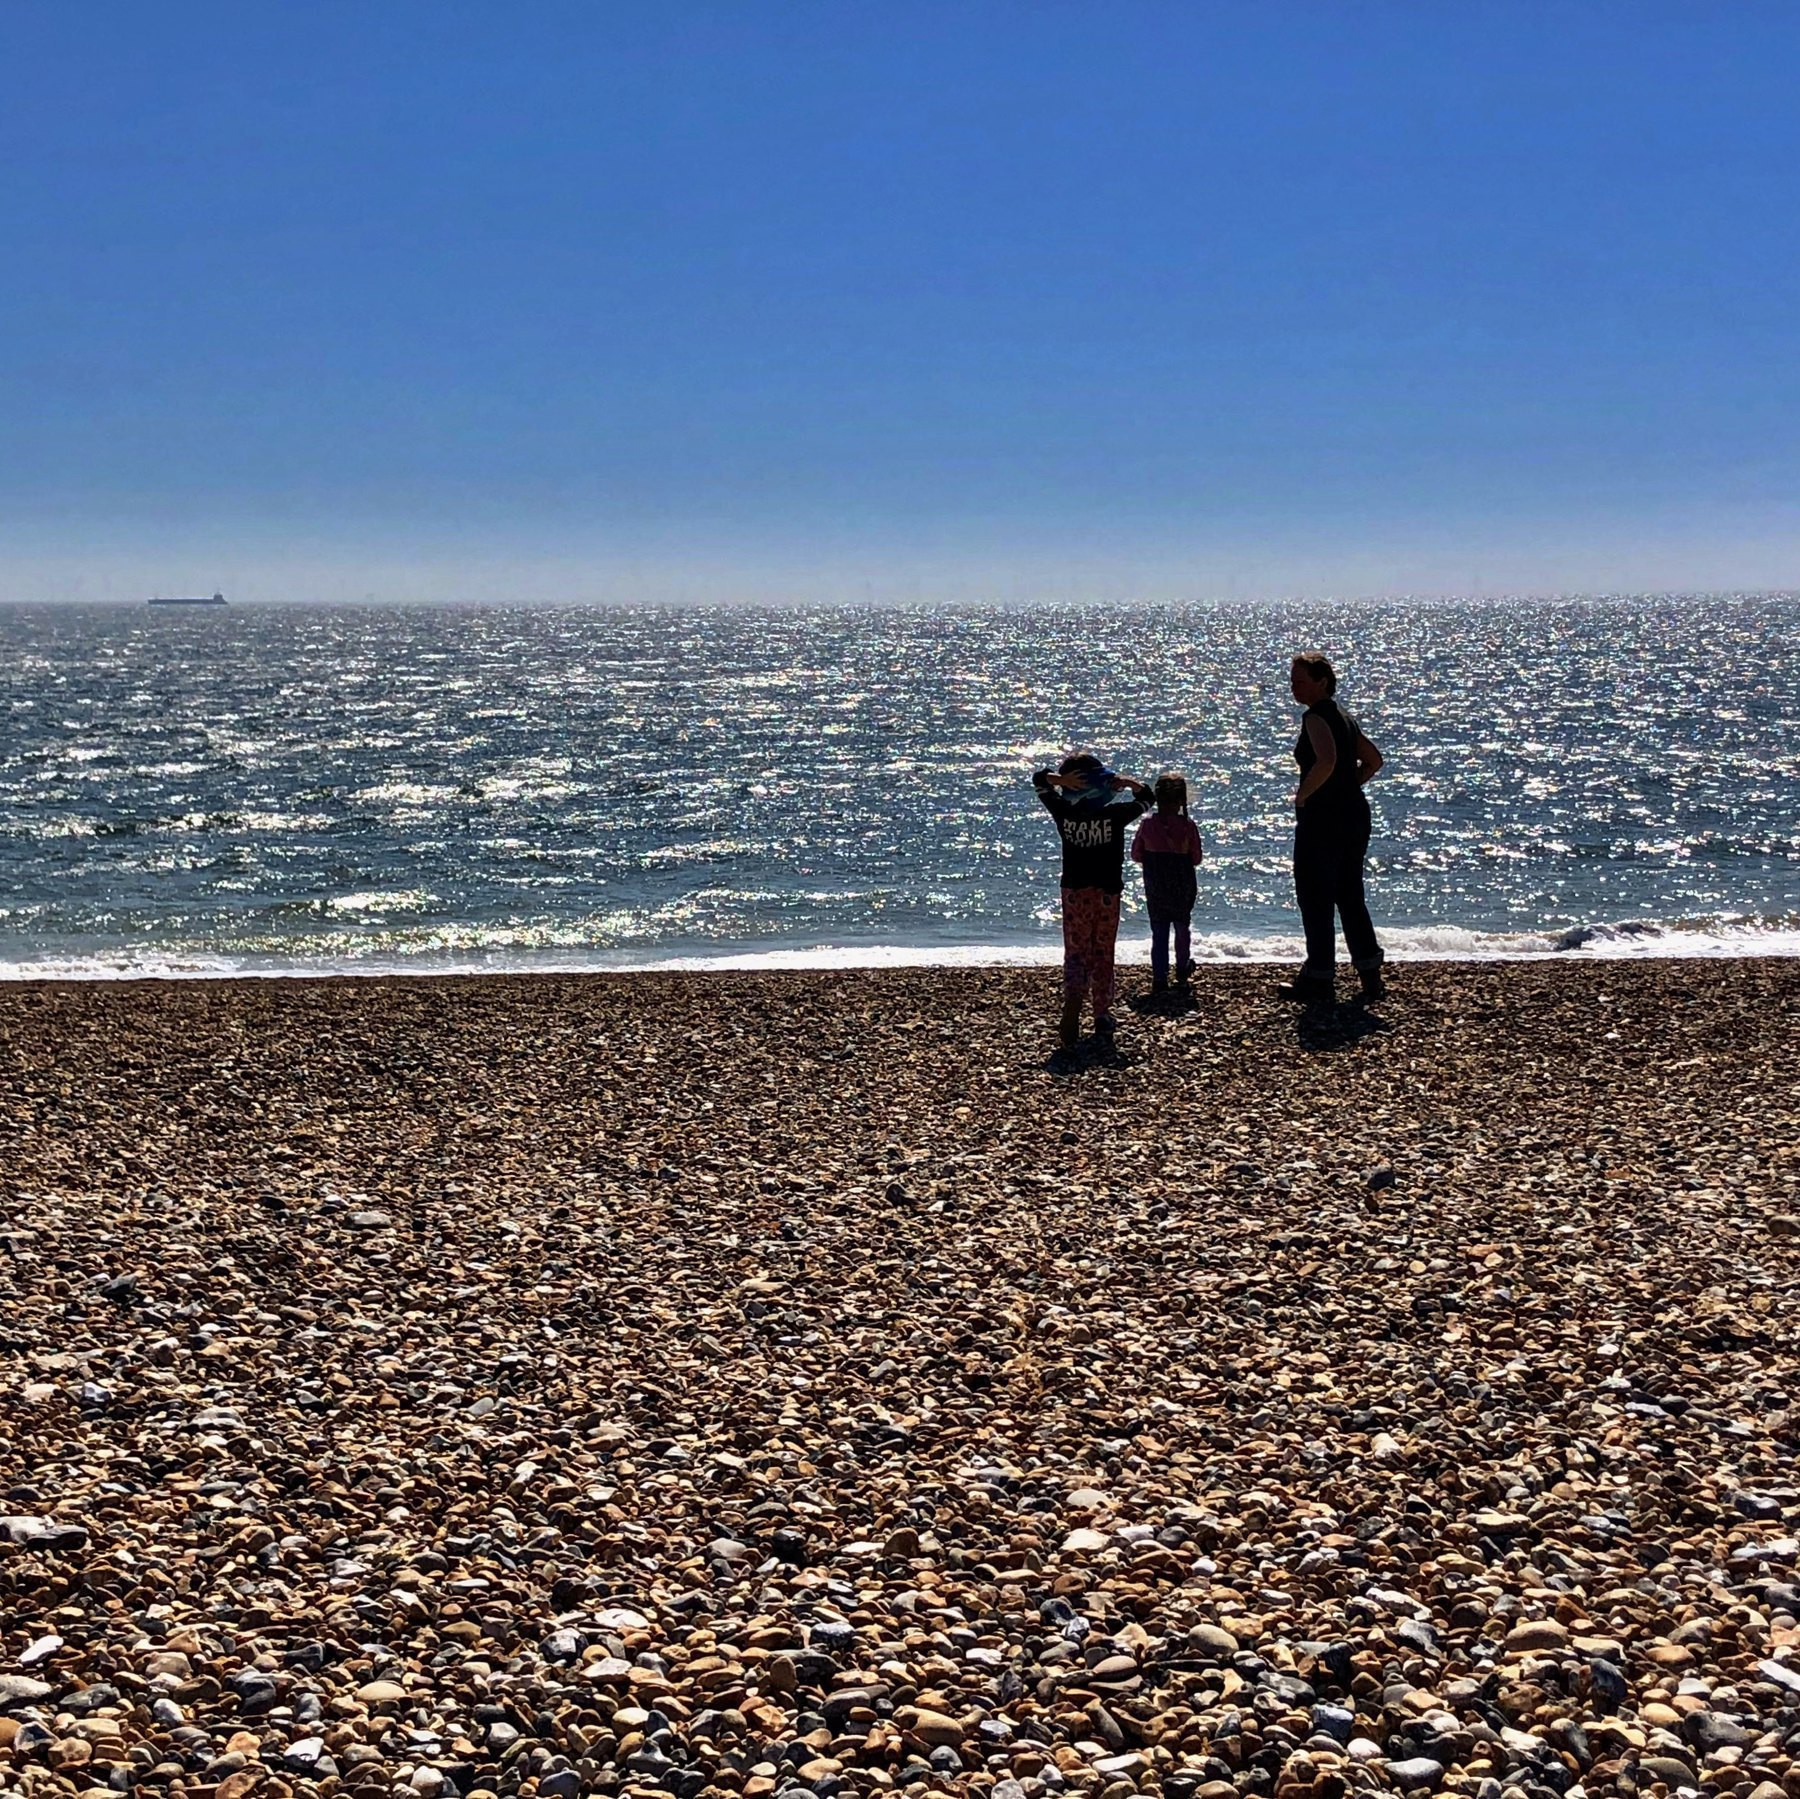 exercising on Shoreham Beach.